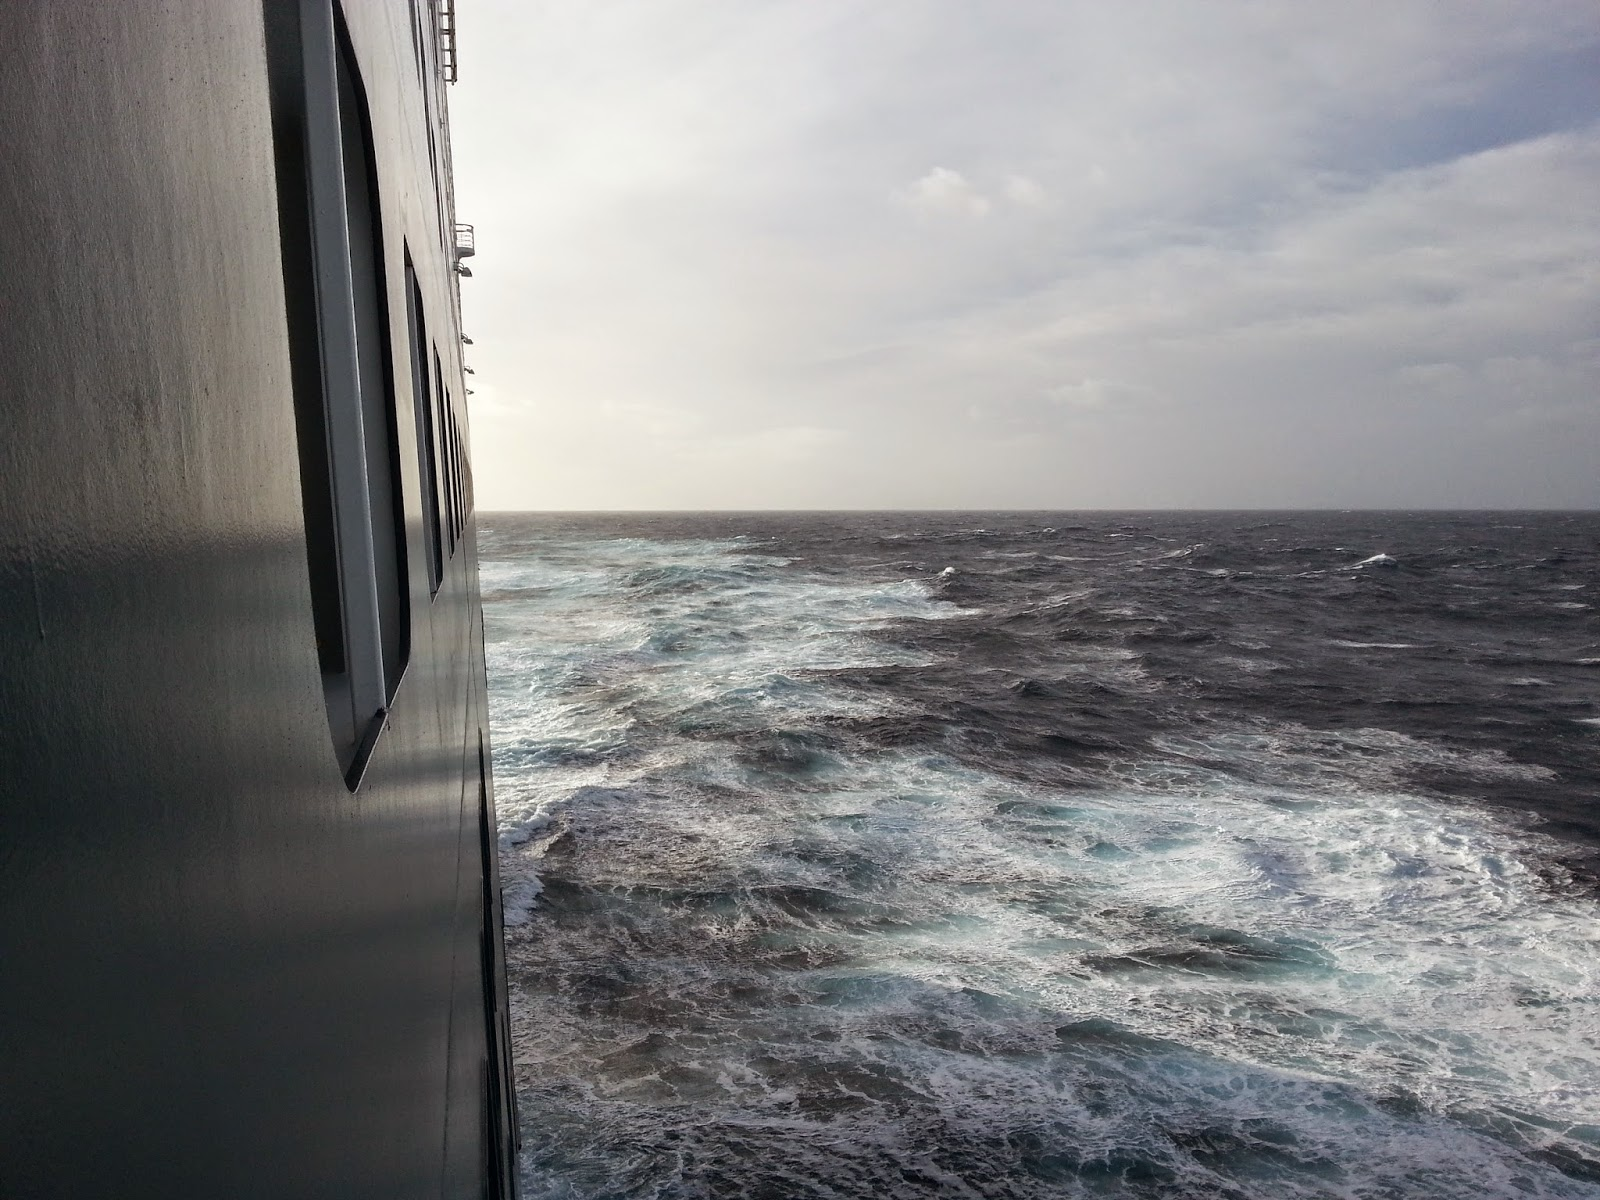 Queen Mary 2 (QM2) - Sheltered Balcony View